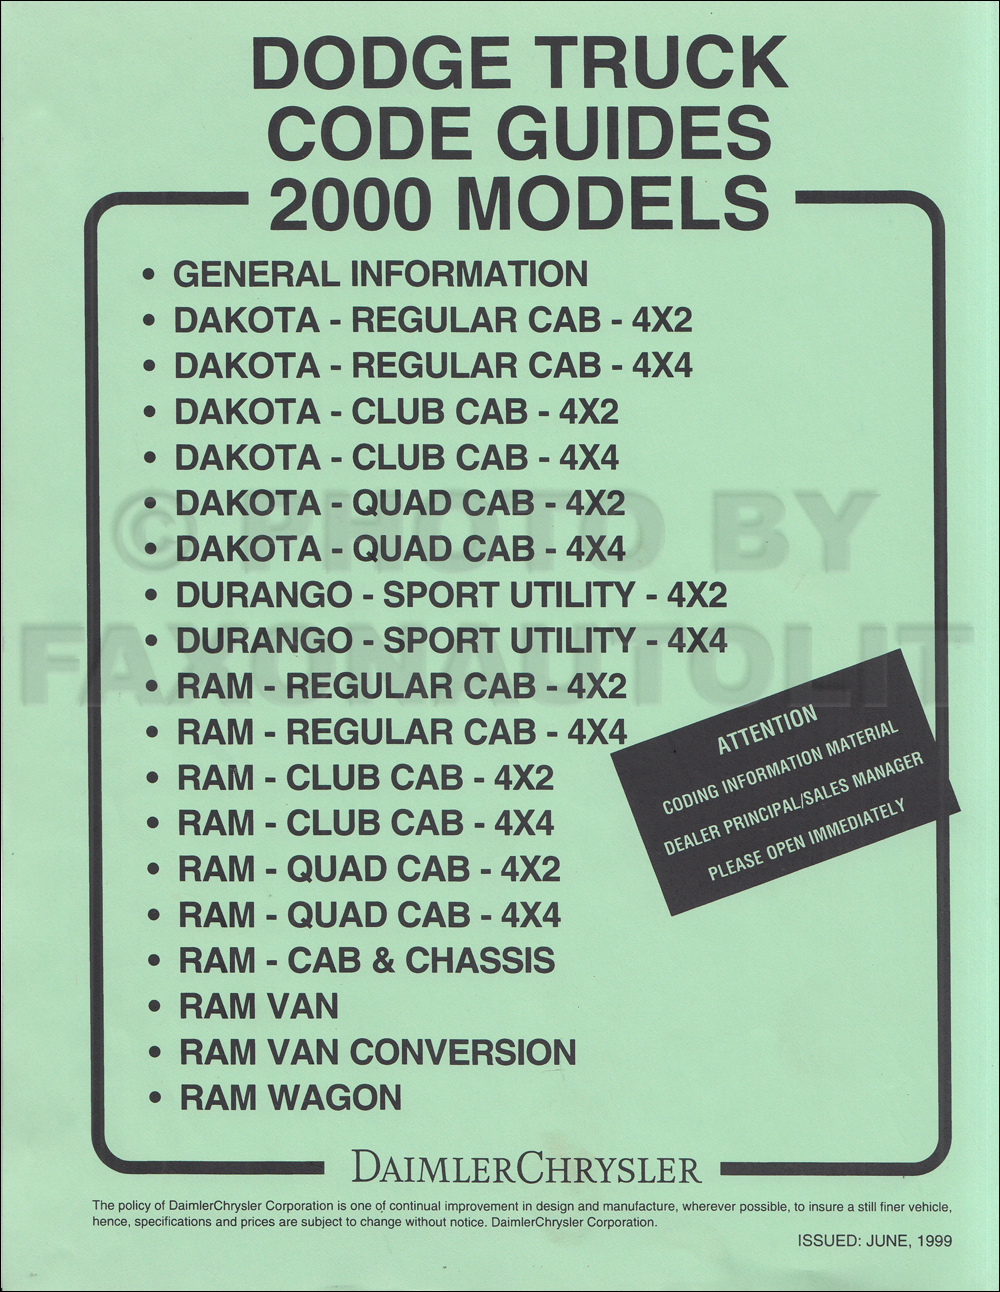 2000 Dodge Truck Ordering Guide Original